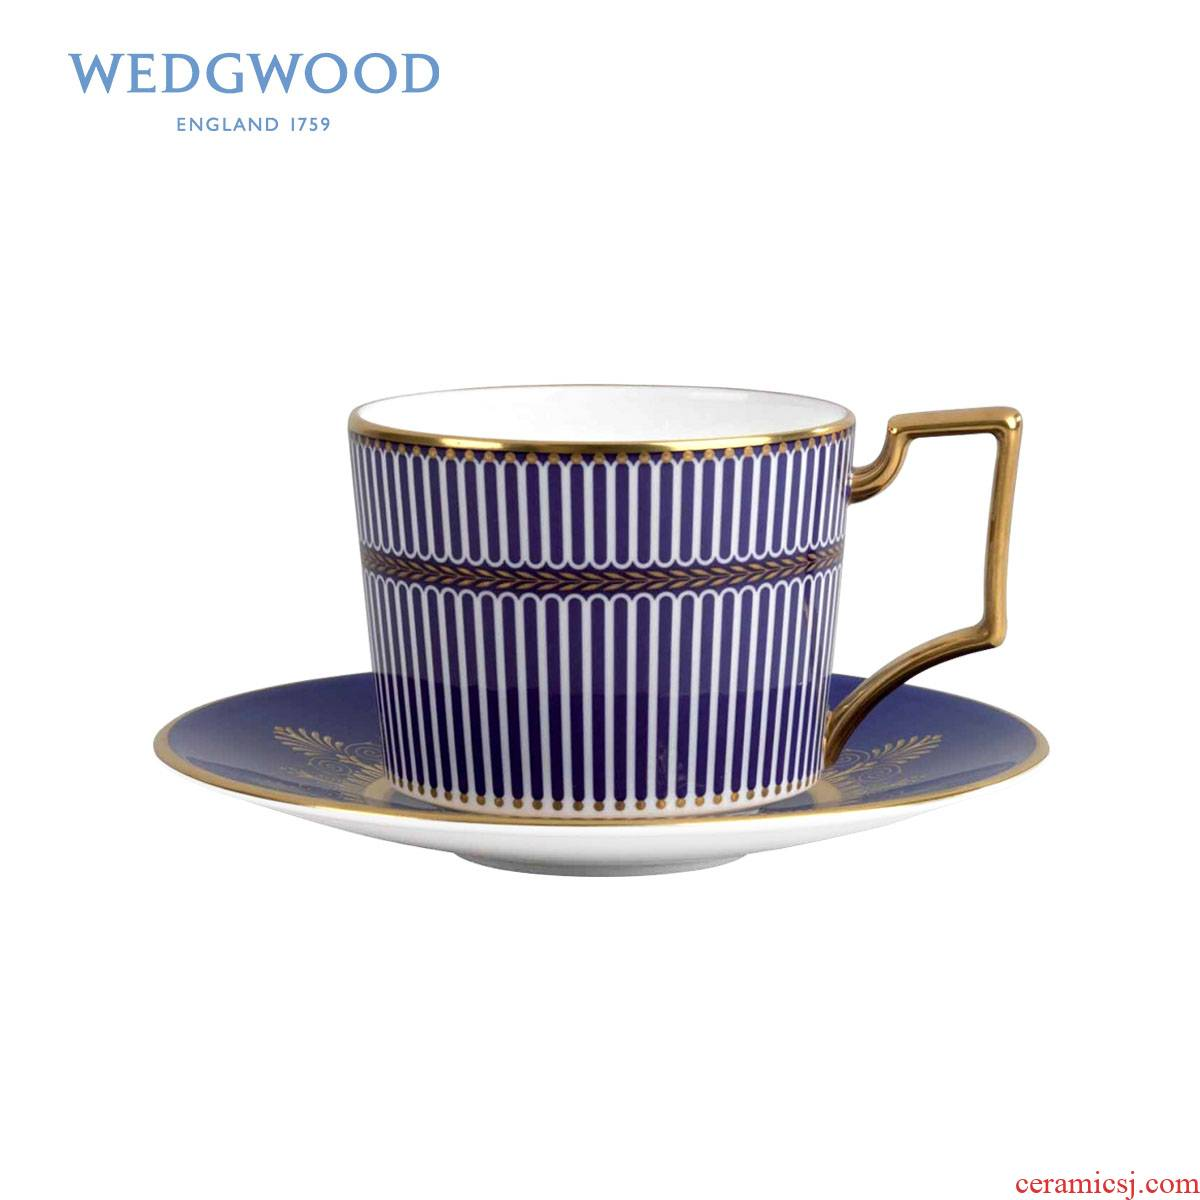 Wedgwood & amp; Bentley Bentley LanYao goldcord blue/pink ipads porcelain cup of a disc of suits for